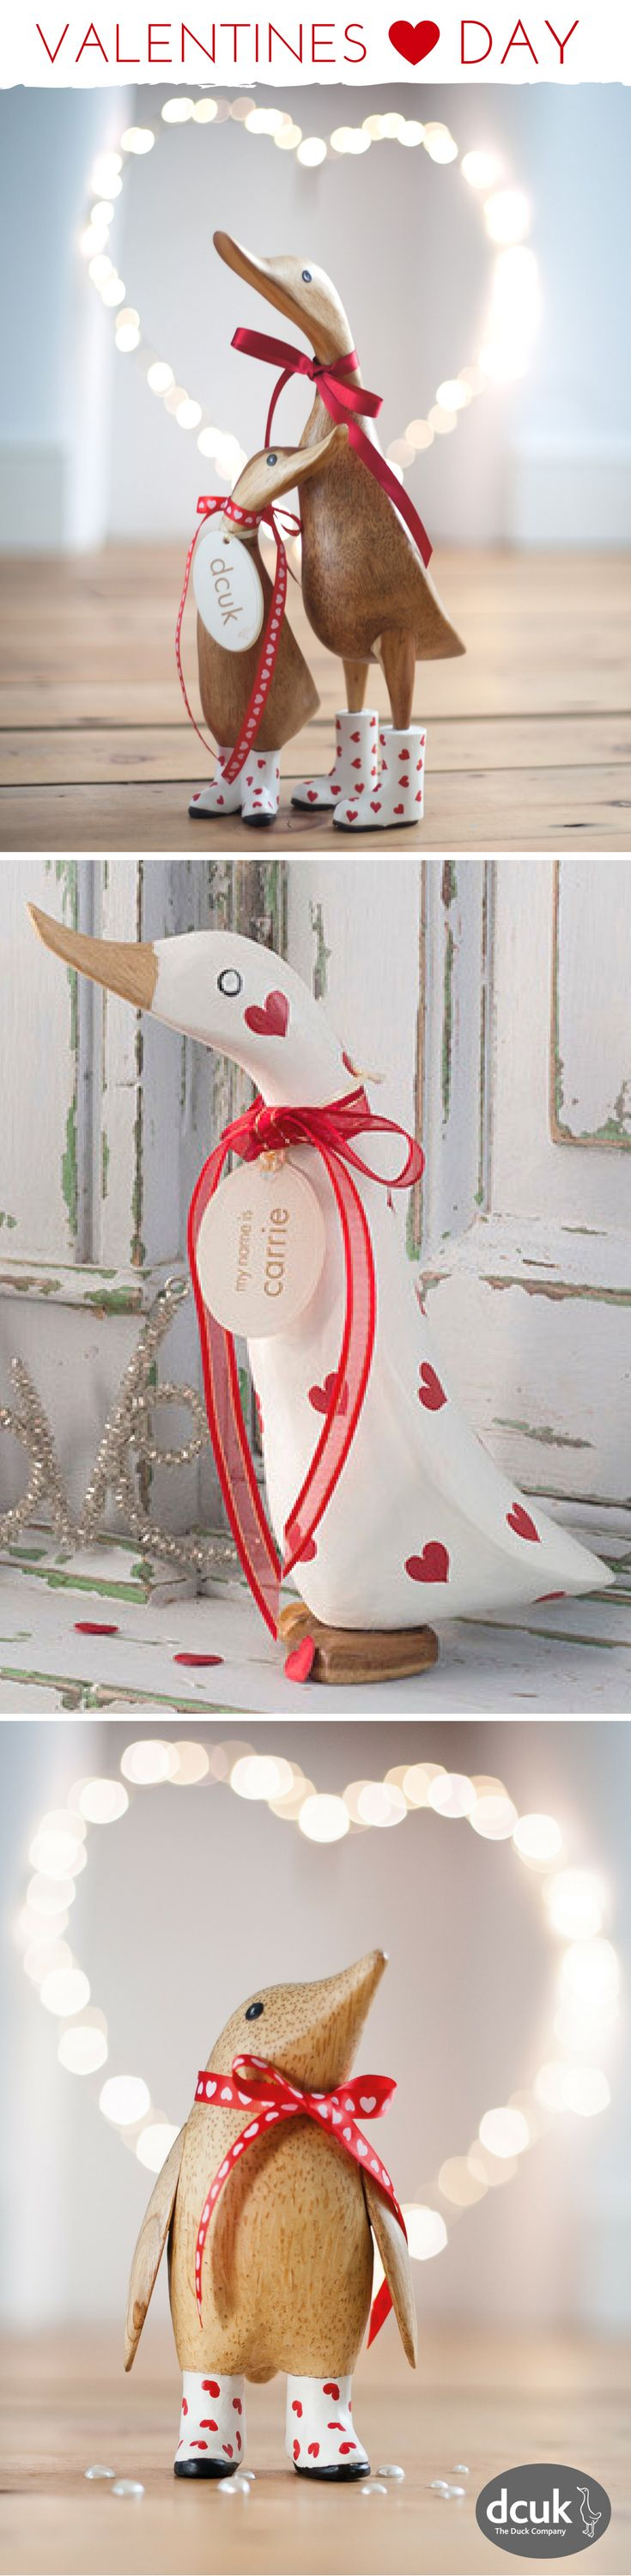 Our collection of personalised gifts for Valentines Day includes ducks and penguins. Each can be personalised with the name of your choice. See more on our website at DCUK!